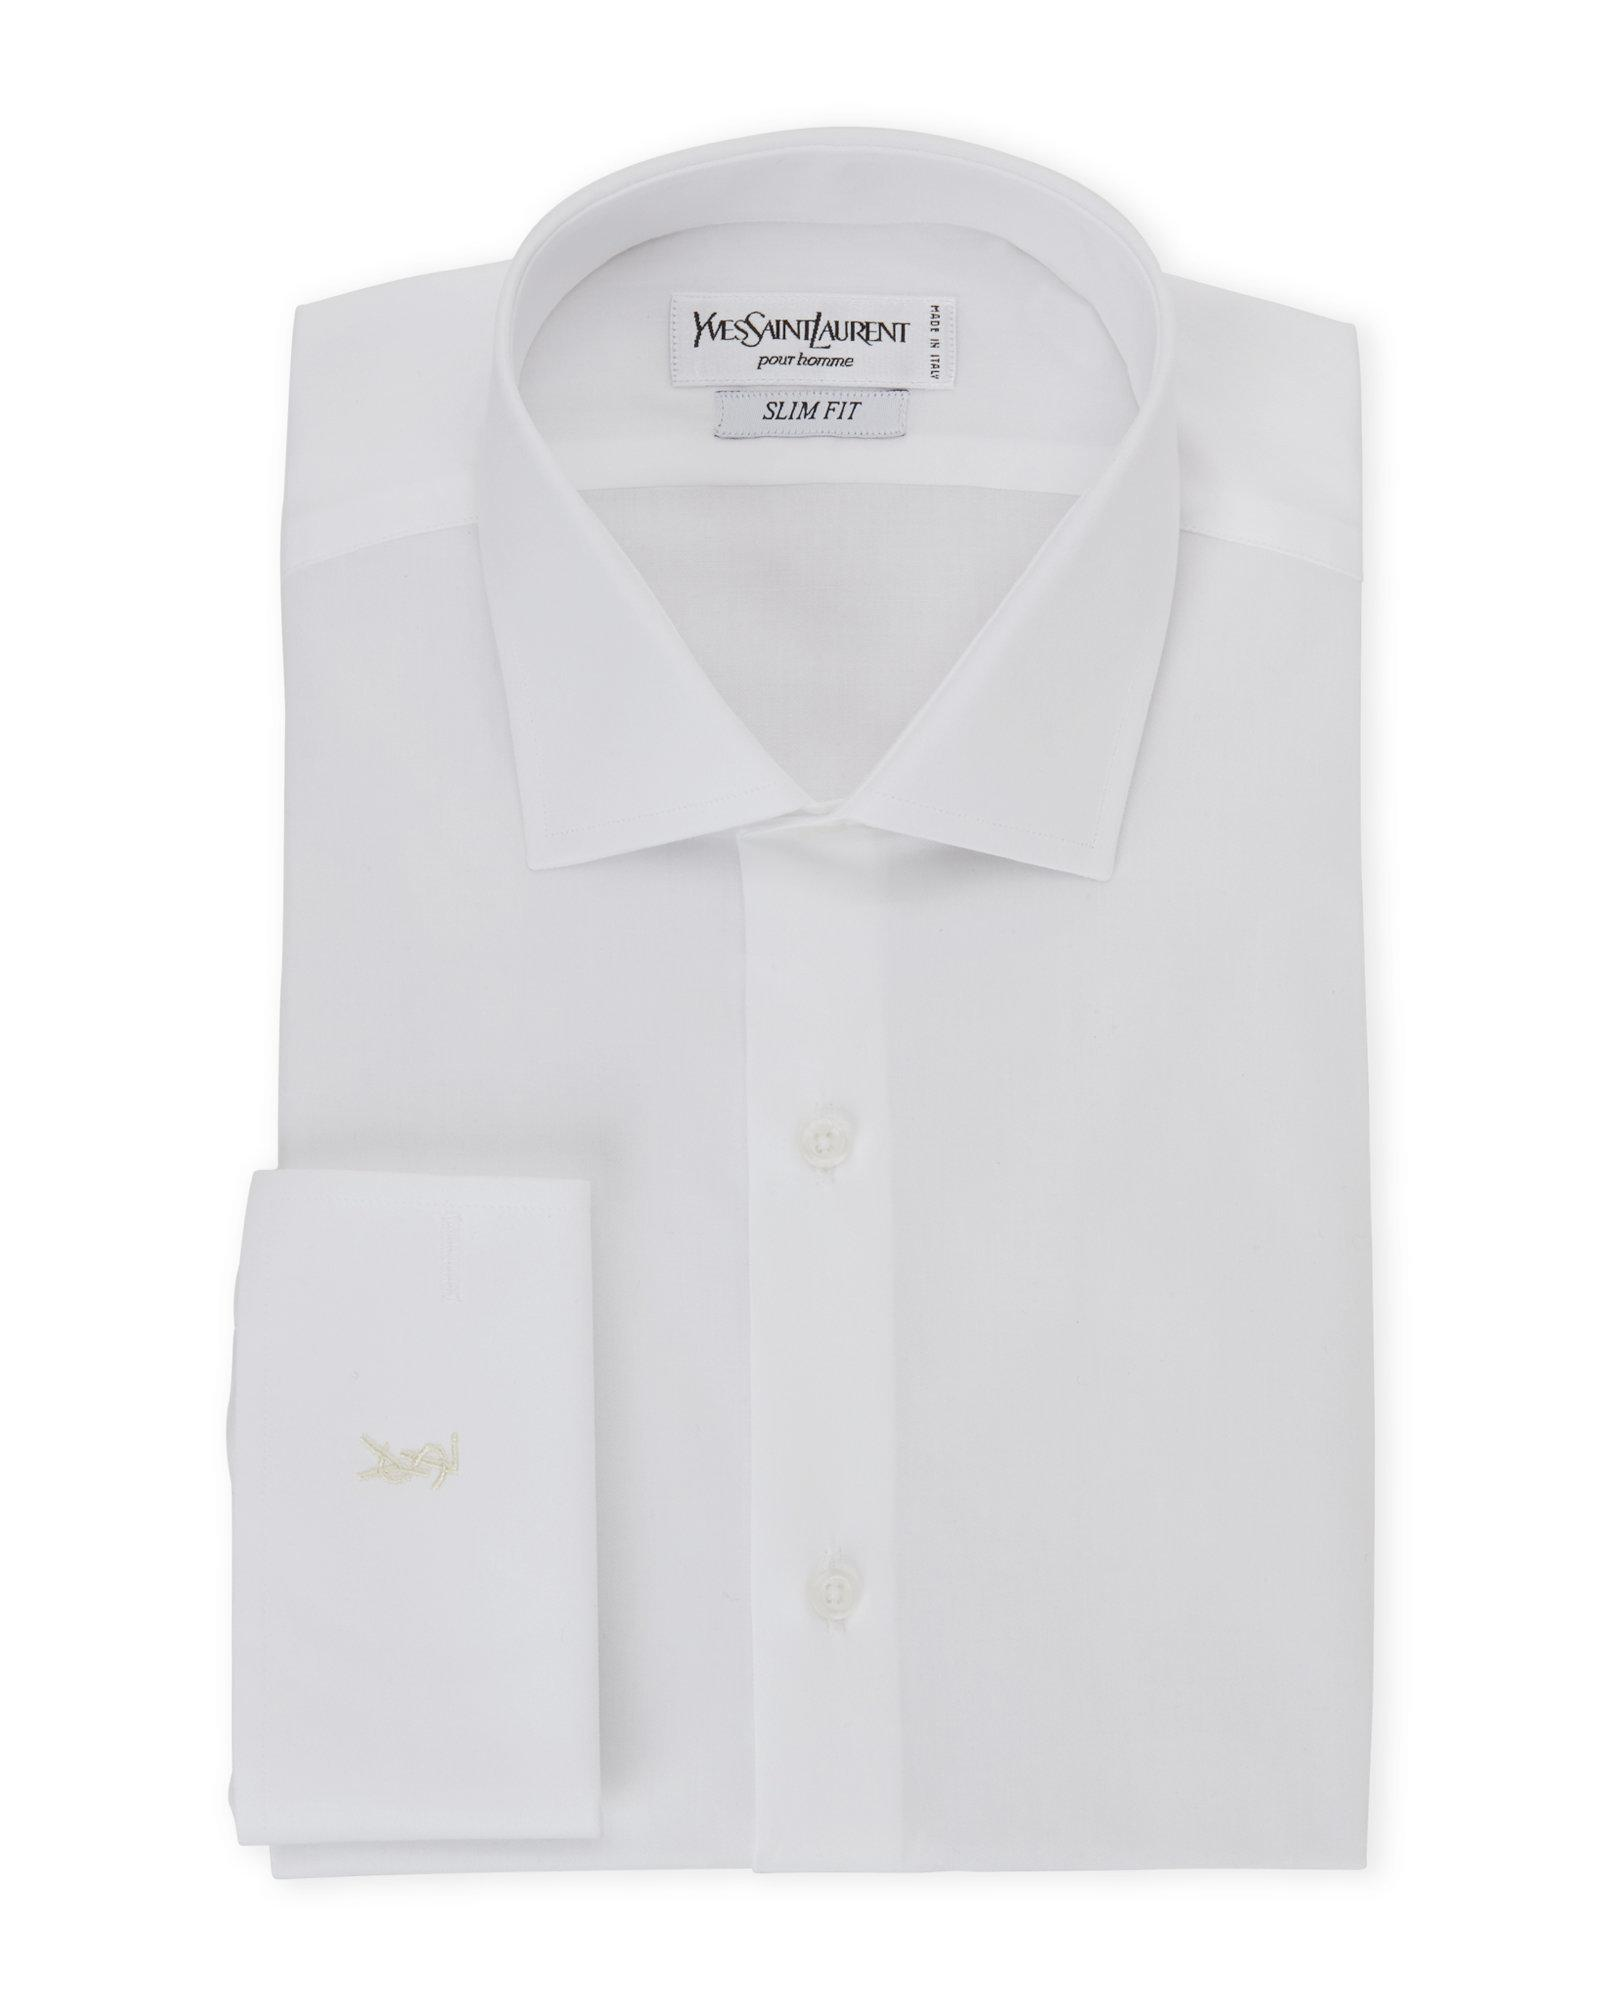 Saint laurent white slim fit french cuff dress shirt in White french cuff shirt slim fit